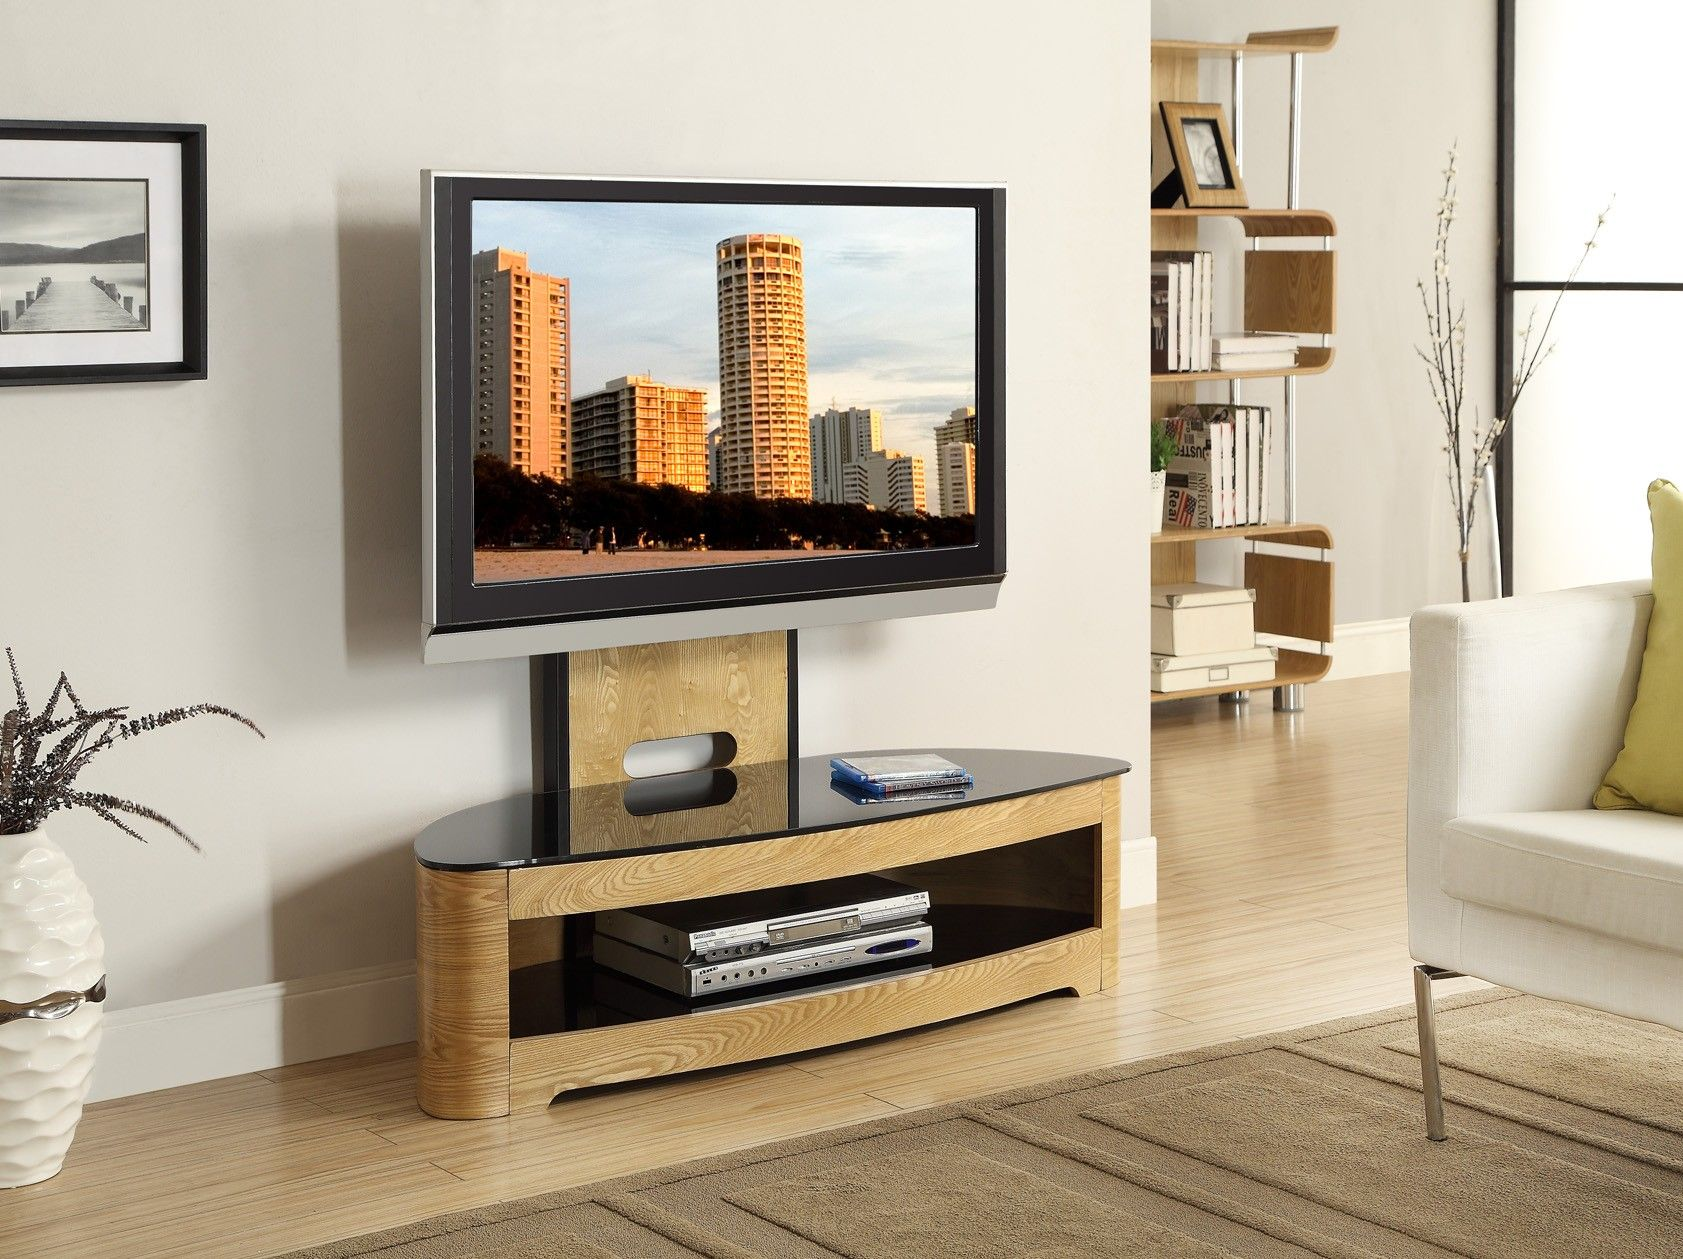 Tv Stands For Lcd Tvs Jual Furnishings Jf209 Curved Oak Cantilever Tv Stand Upto 50